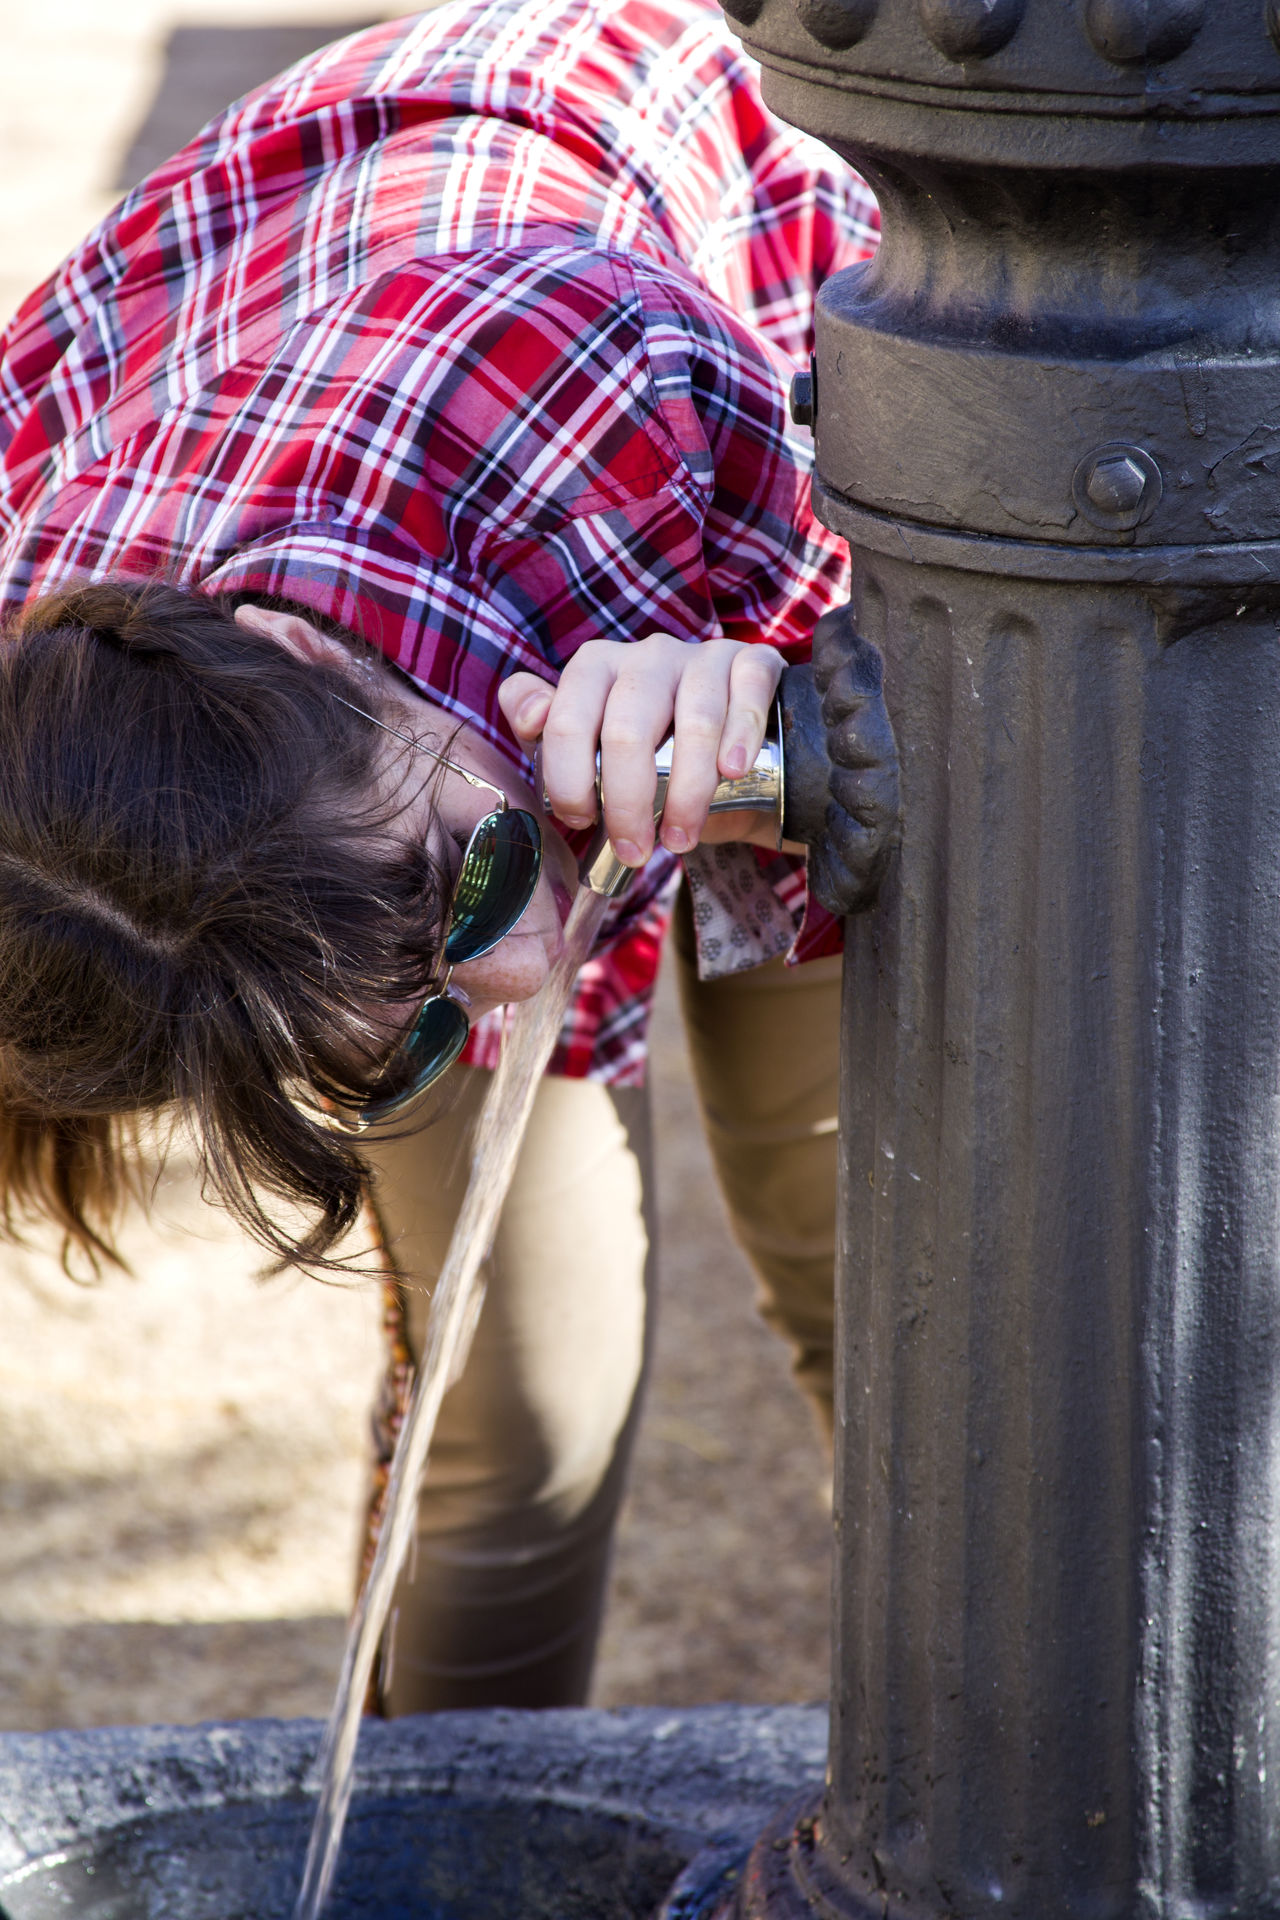 Drinking Drinking Water Drinking Water Fountain Flowing Water Girl Human Body Part One Person Outdoors People Refreshment Teenager Thirsty  Water Women Around The World